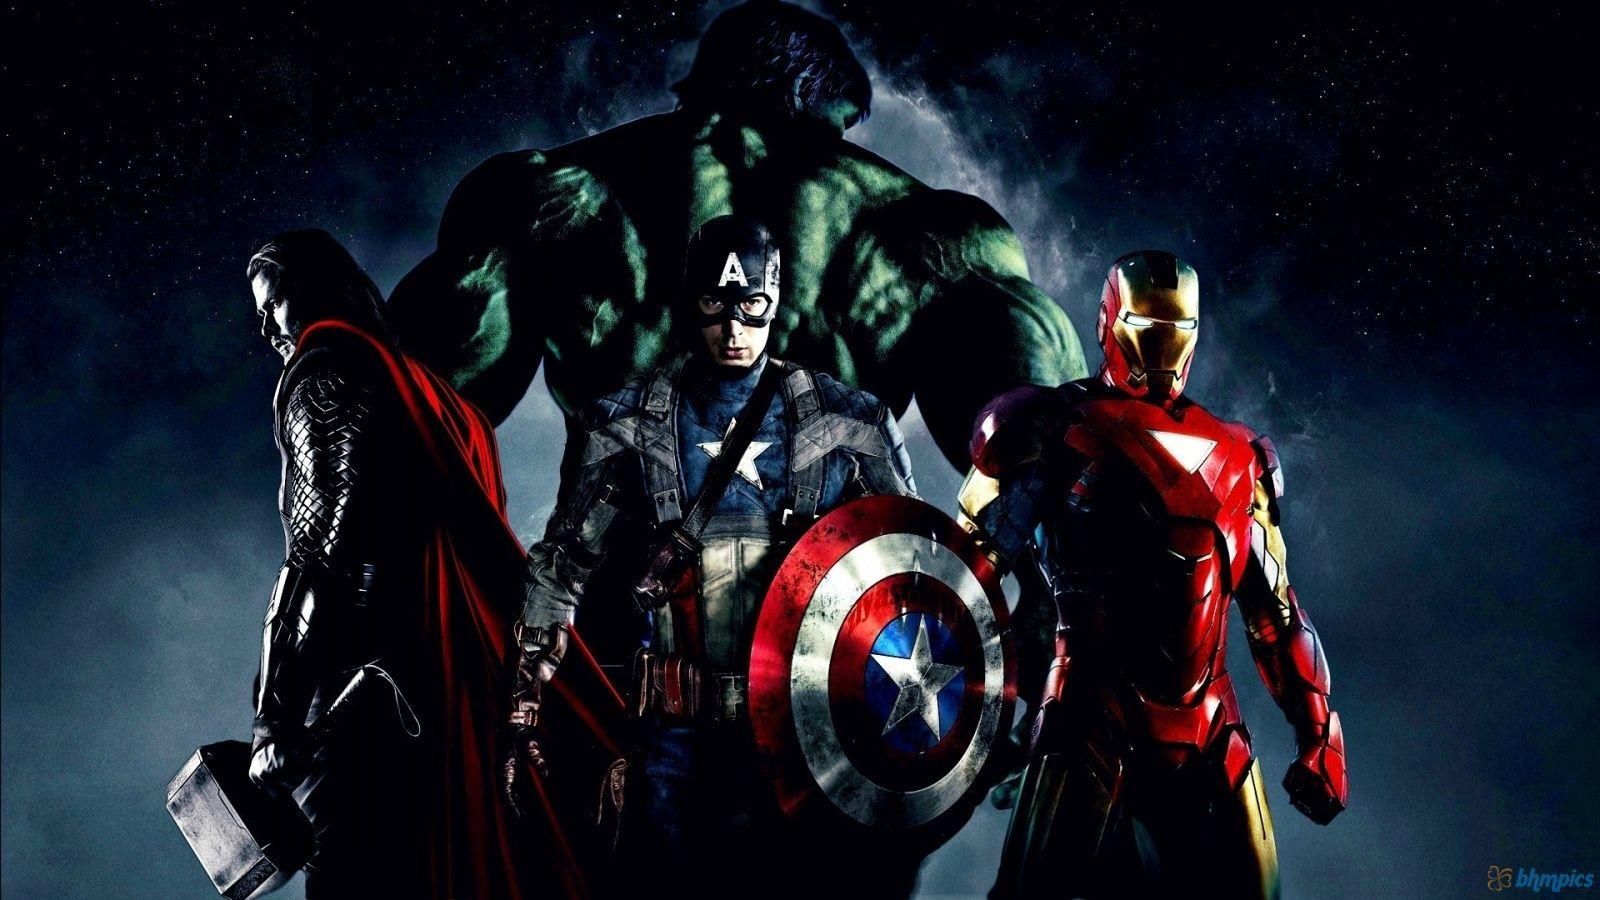 hd wallpapers super herois - photo #29